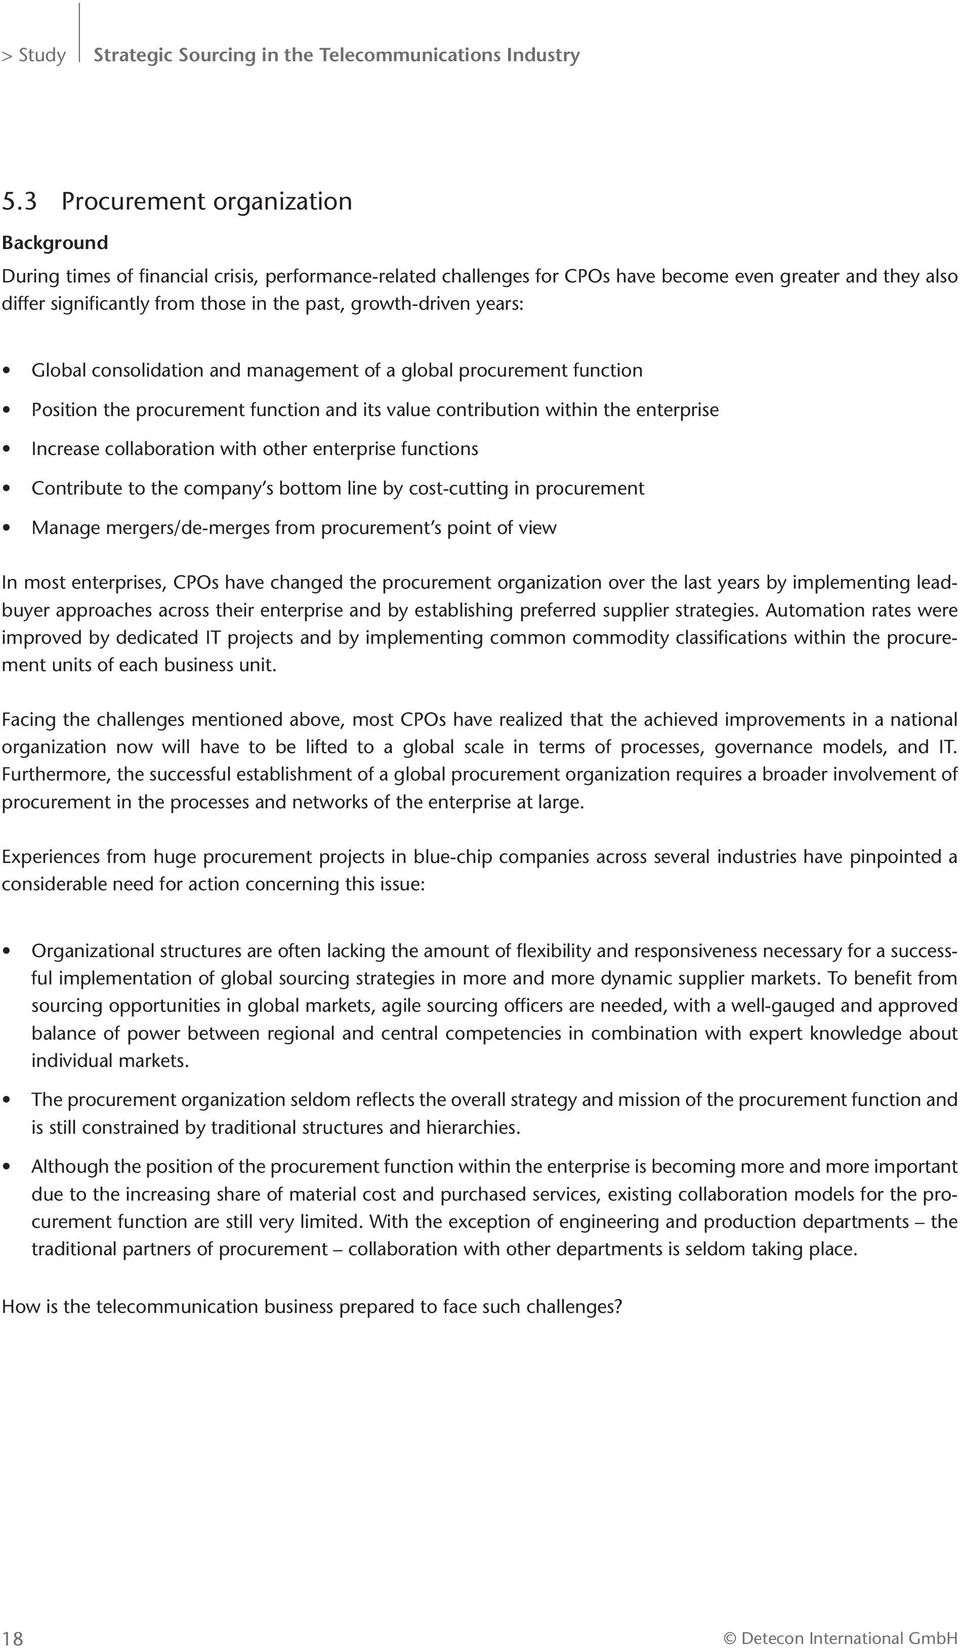 growth-driven years: Global consolidation and management of a global procurement function Position the procurement function and its value contribution within the enterprise Increase collaboration